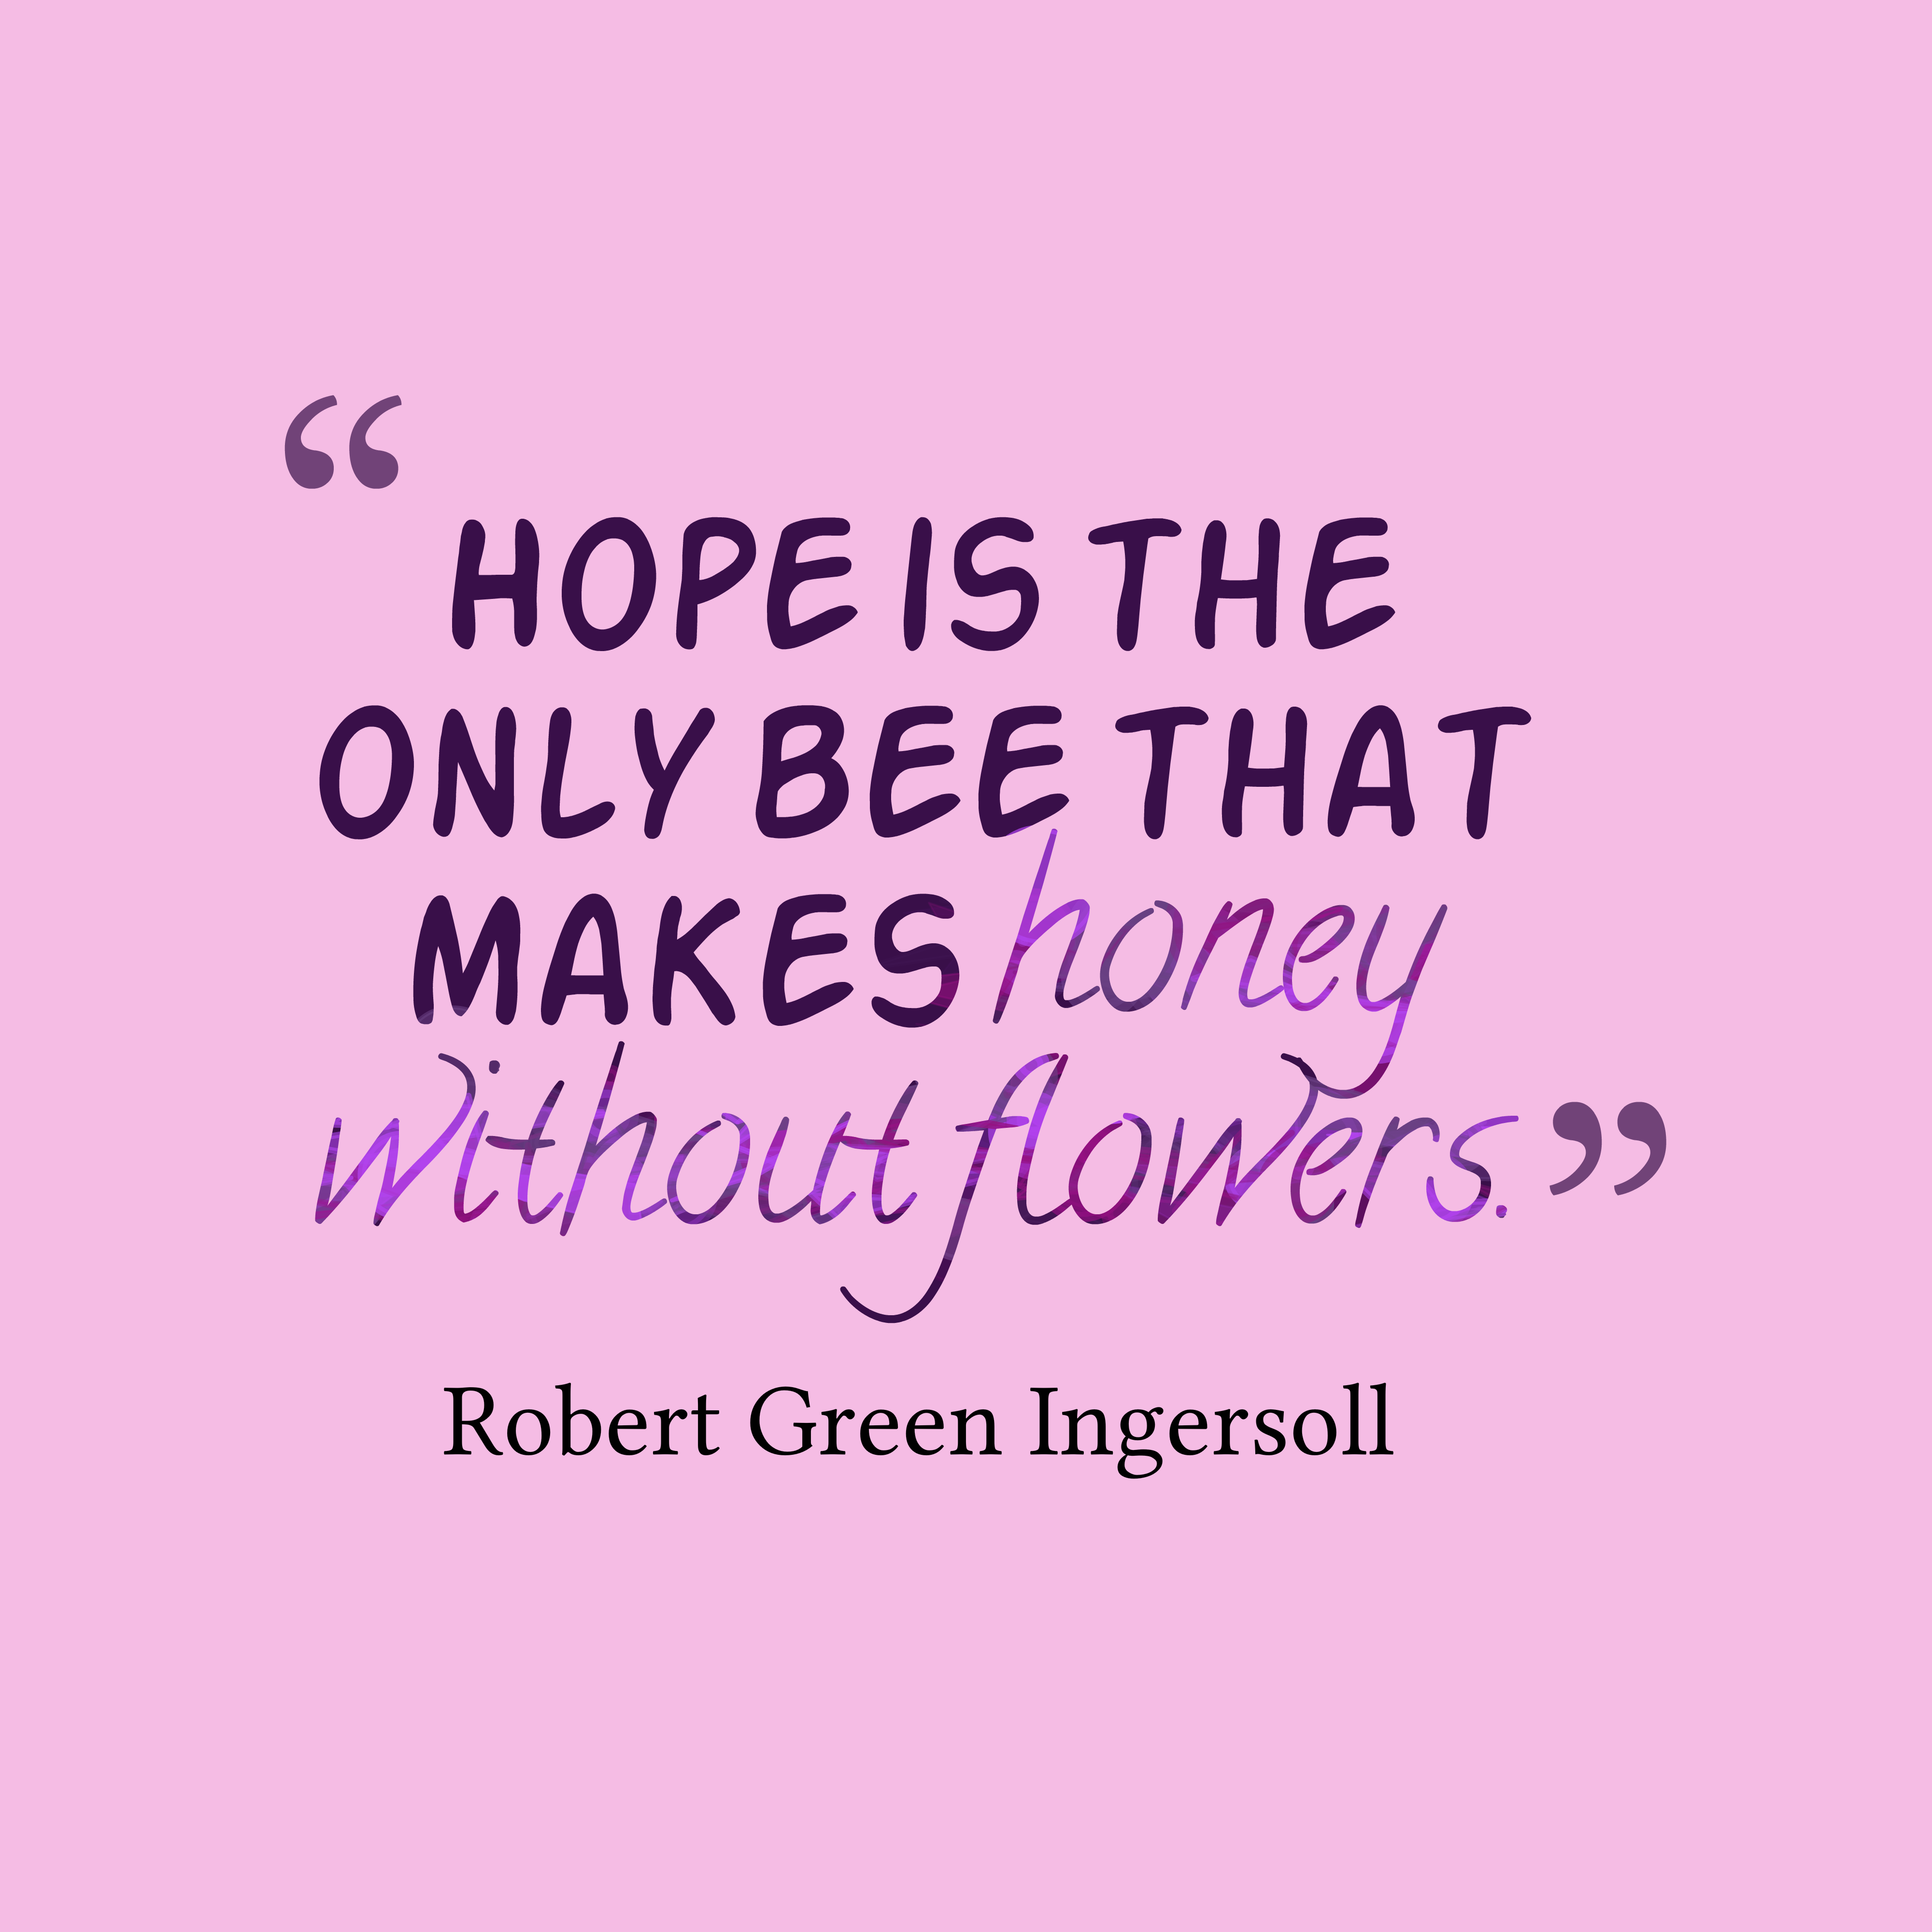 Create Quotes picture for high resolution from Robert Green